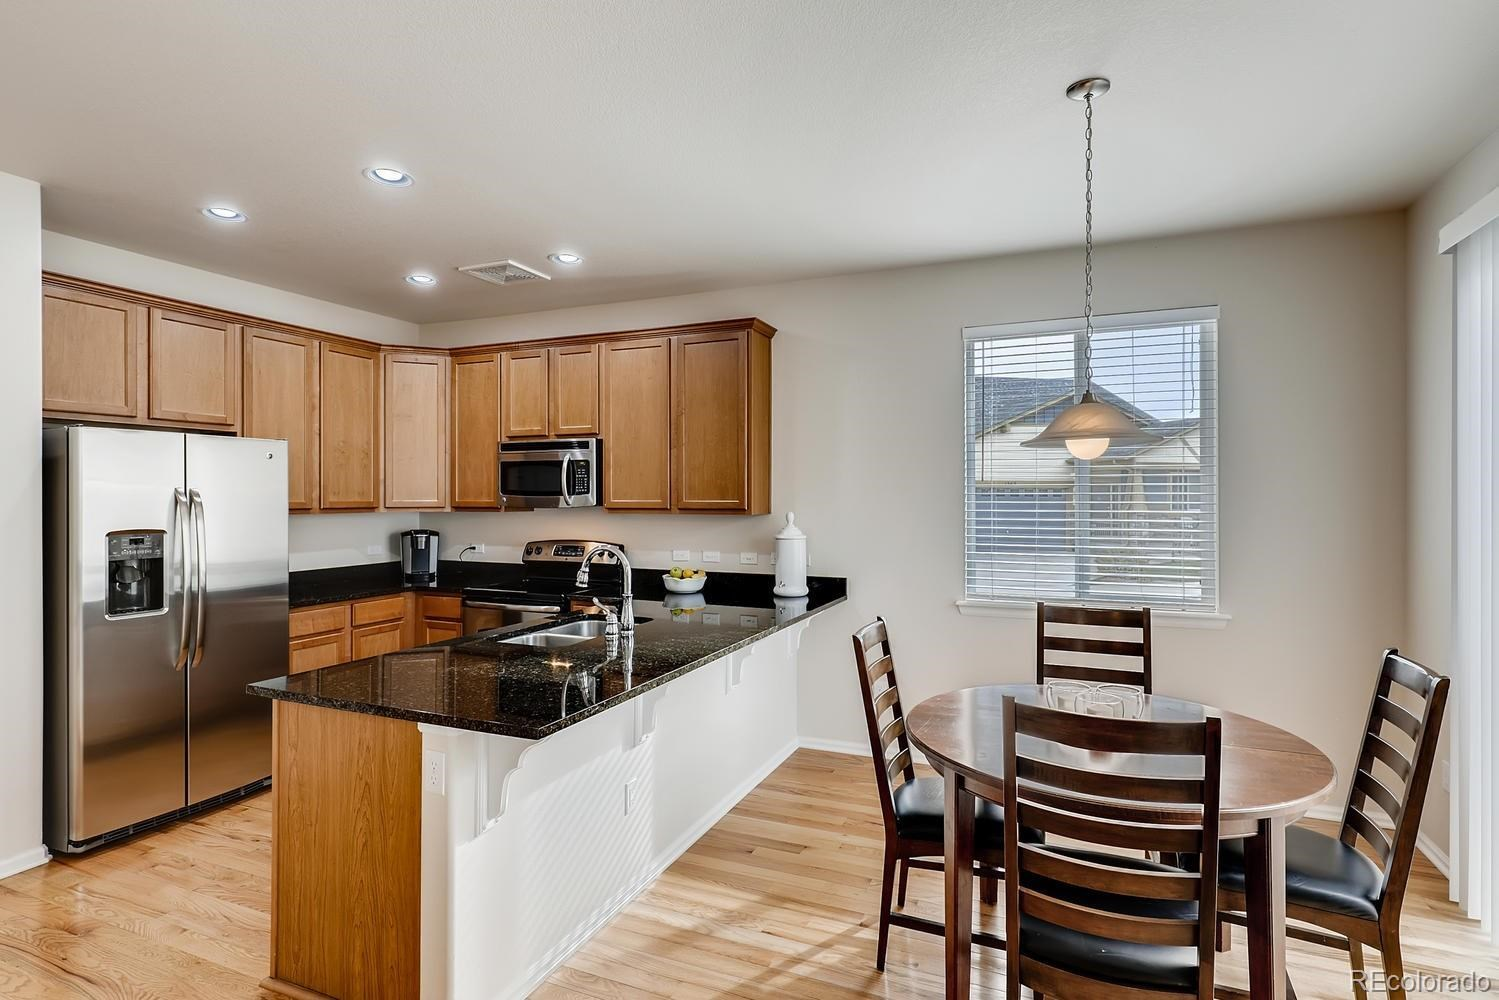 MLS# 8893940 - 13 - 1373 Armstrong Drive, Longmont, CO 80504